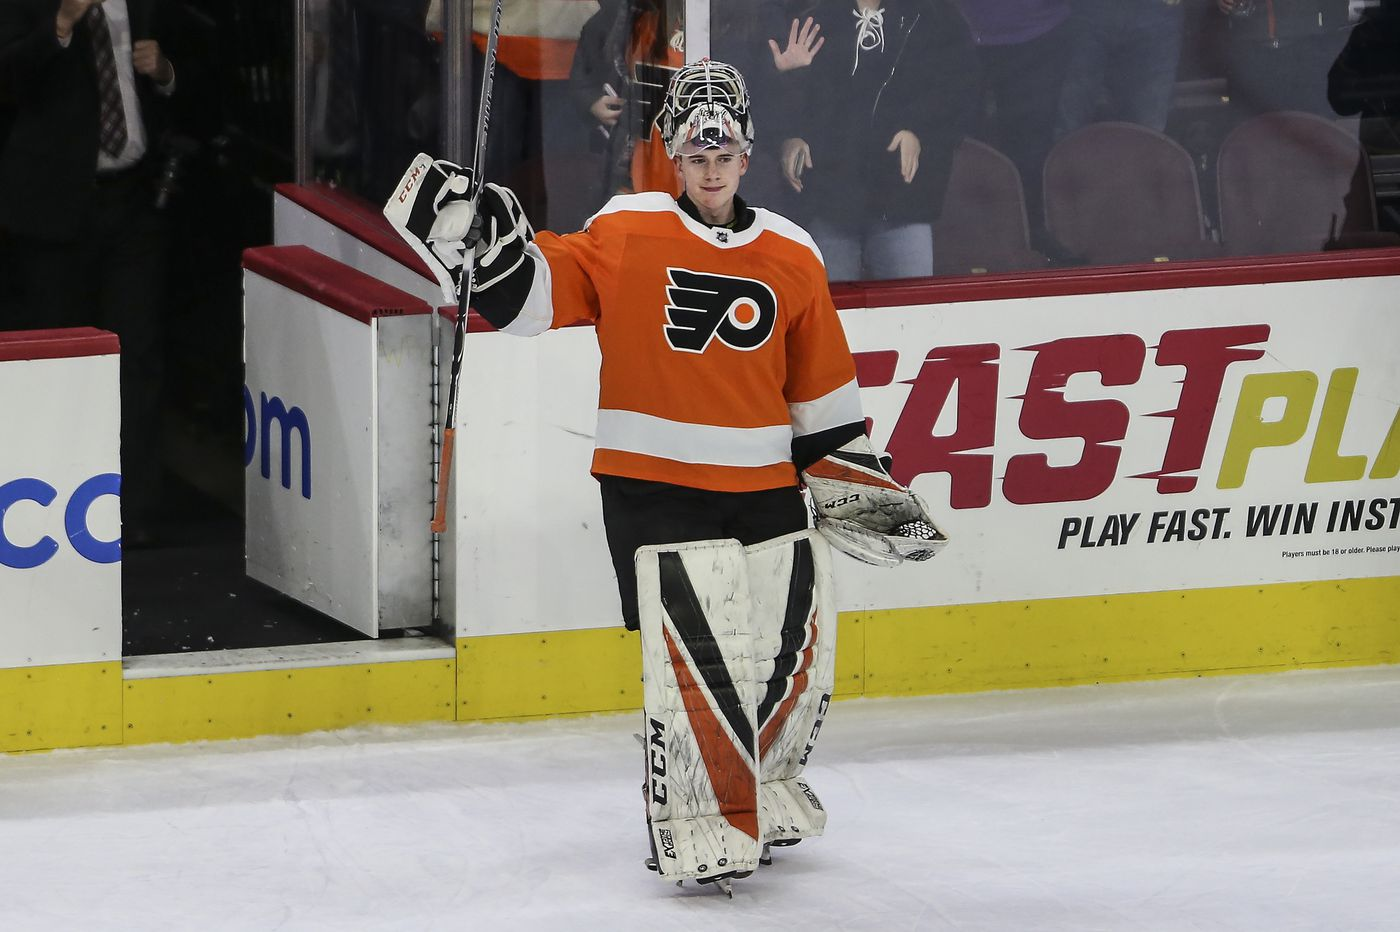 Carter Hart, with family support, boosts Flyers | Sam Donnellon